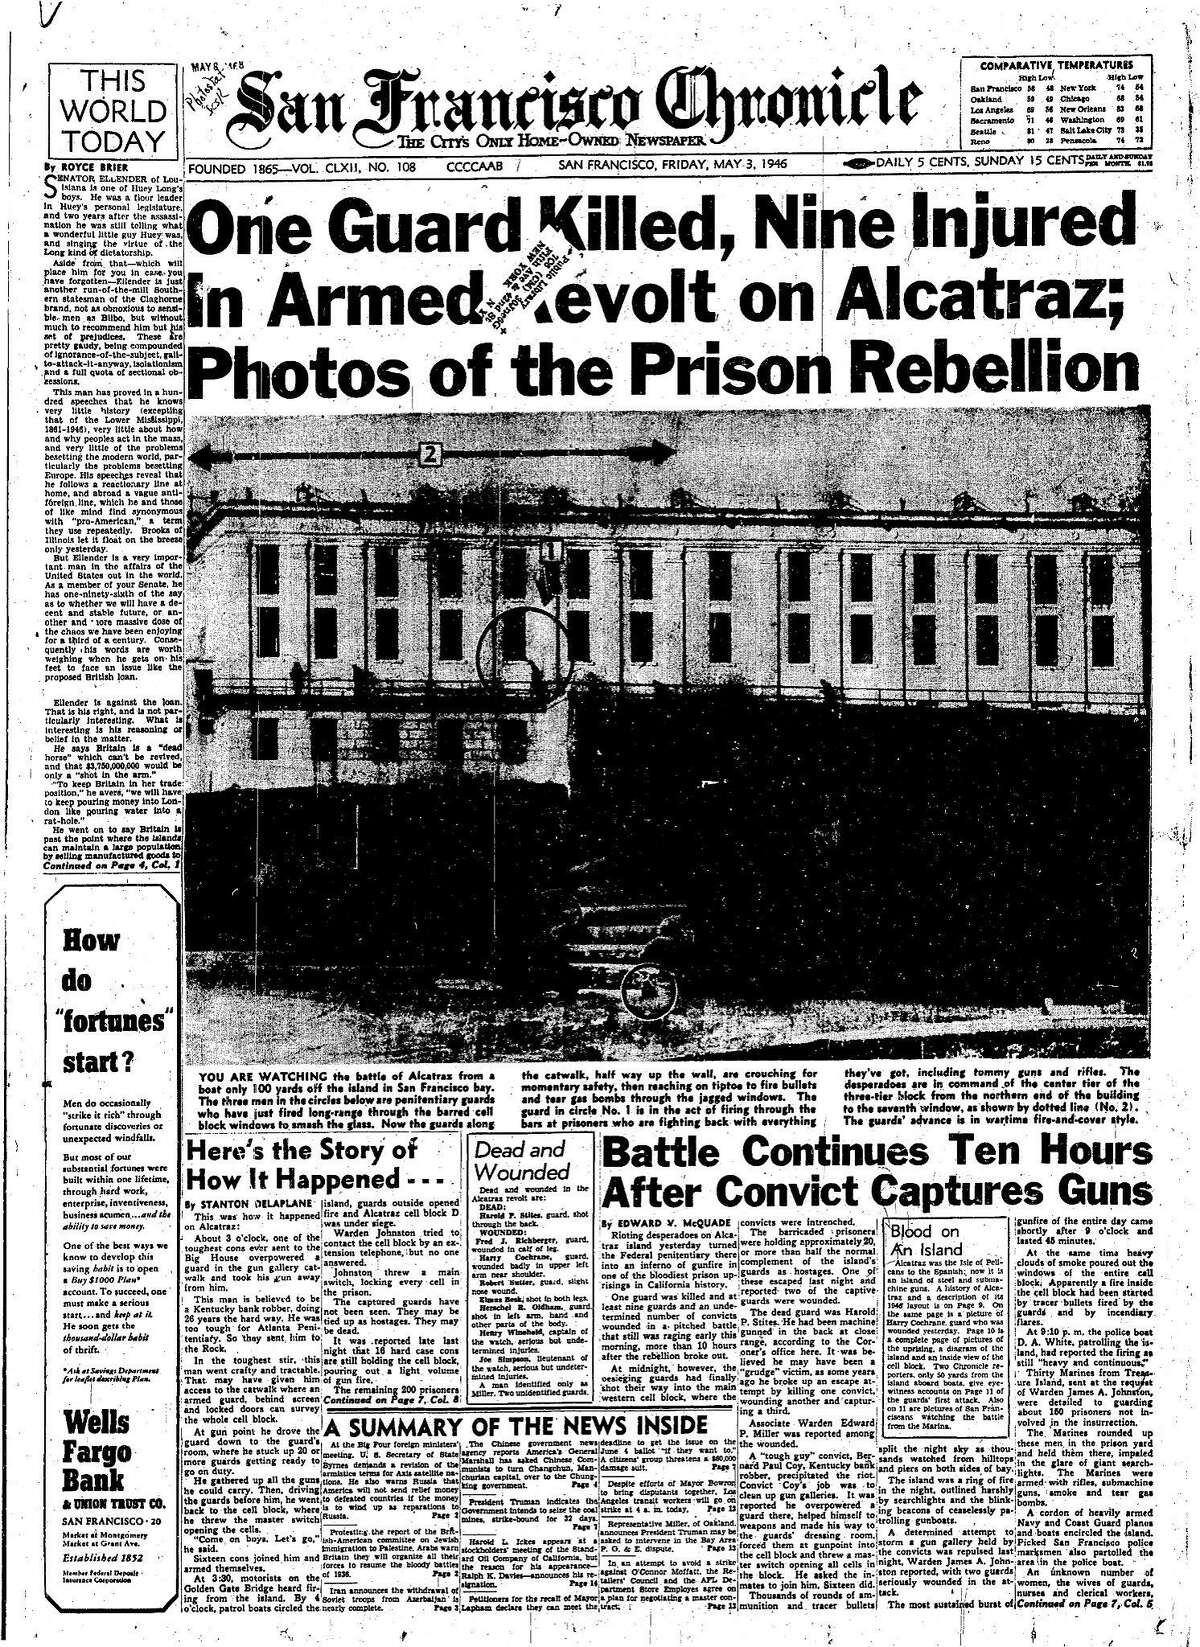 Historic Chronicle Front Page May 3, 1946 Prison rebellion on Alcatraz Chron365, Chroncover